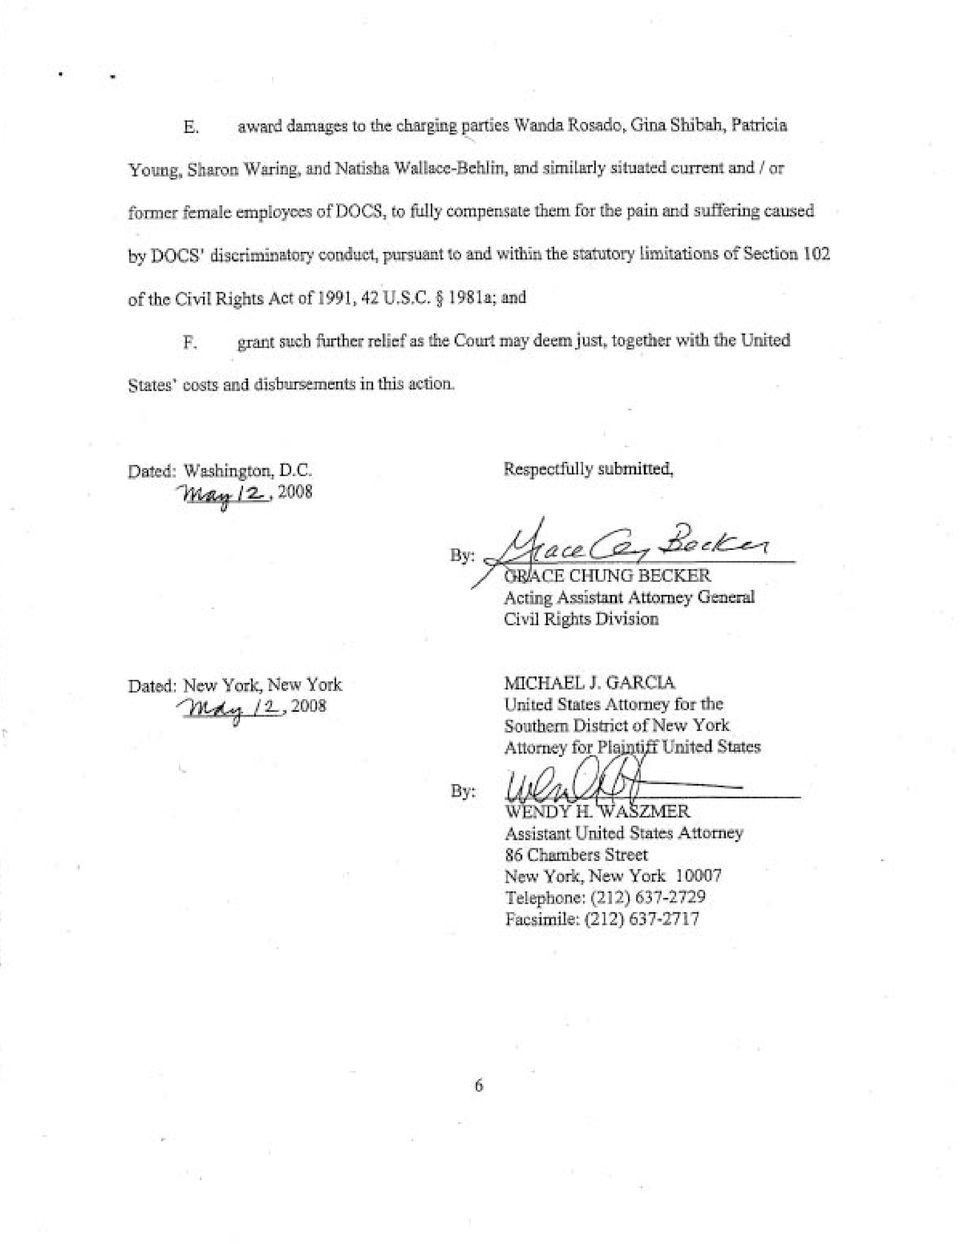 grant such further relief as the Court may deem just, together with the United States' costs and disbursements in this action. Dated: Washington, D.C..* /z,2008 Respectfully submitted, By: && c k / &&CE CHUNG BECKER Acting Assistant Attorney General Civil Rights Division 1 Dated: New York, New York MICHAEL J.